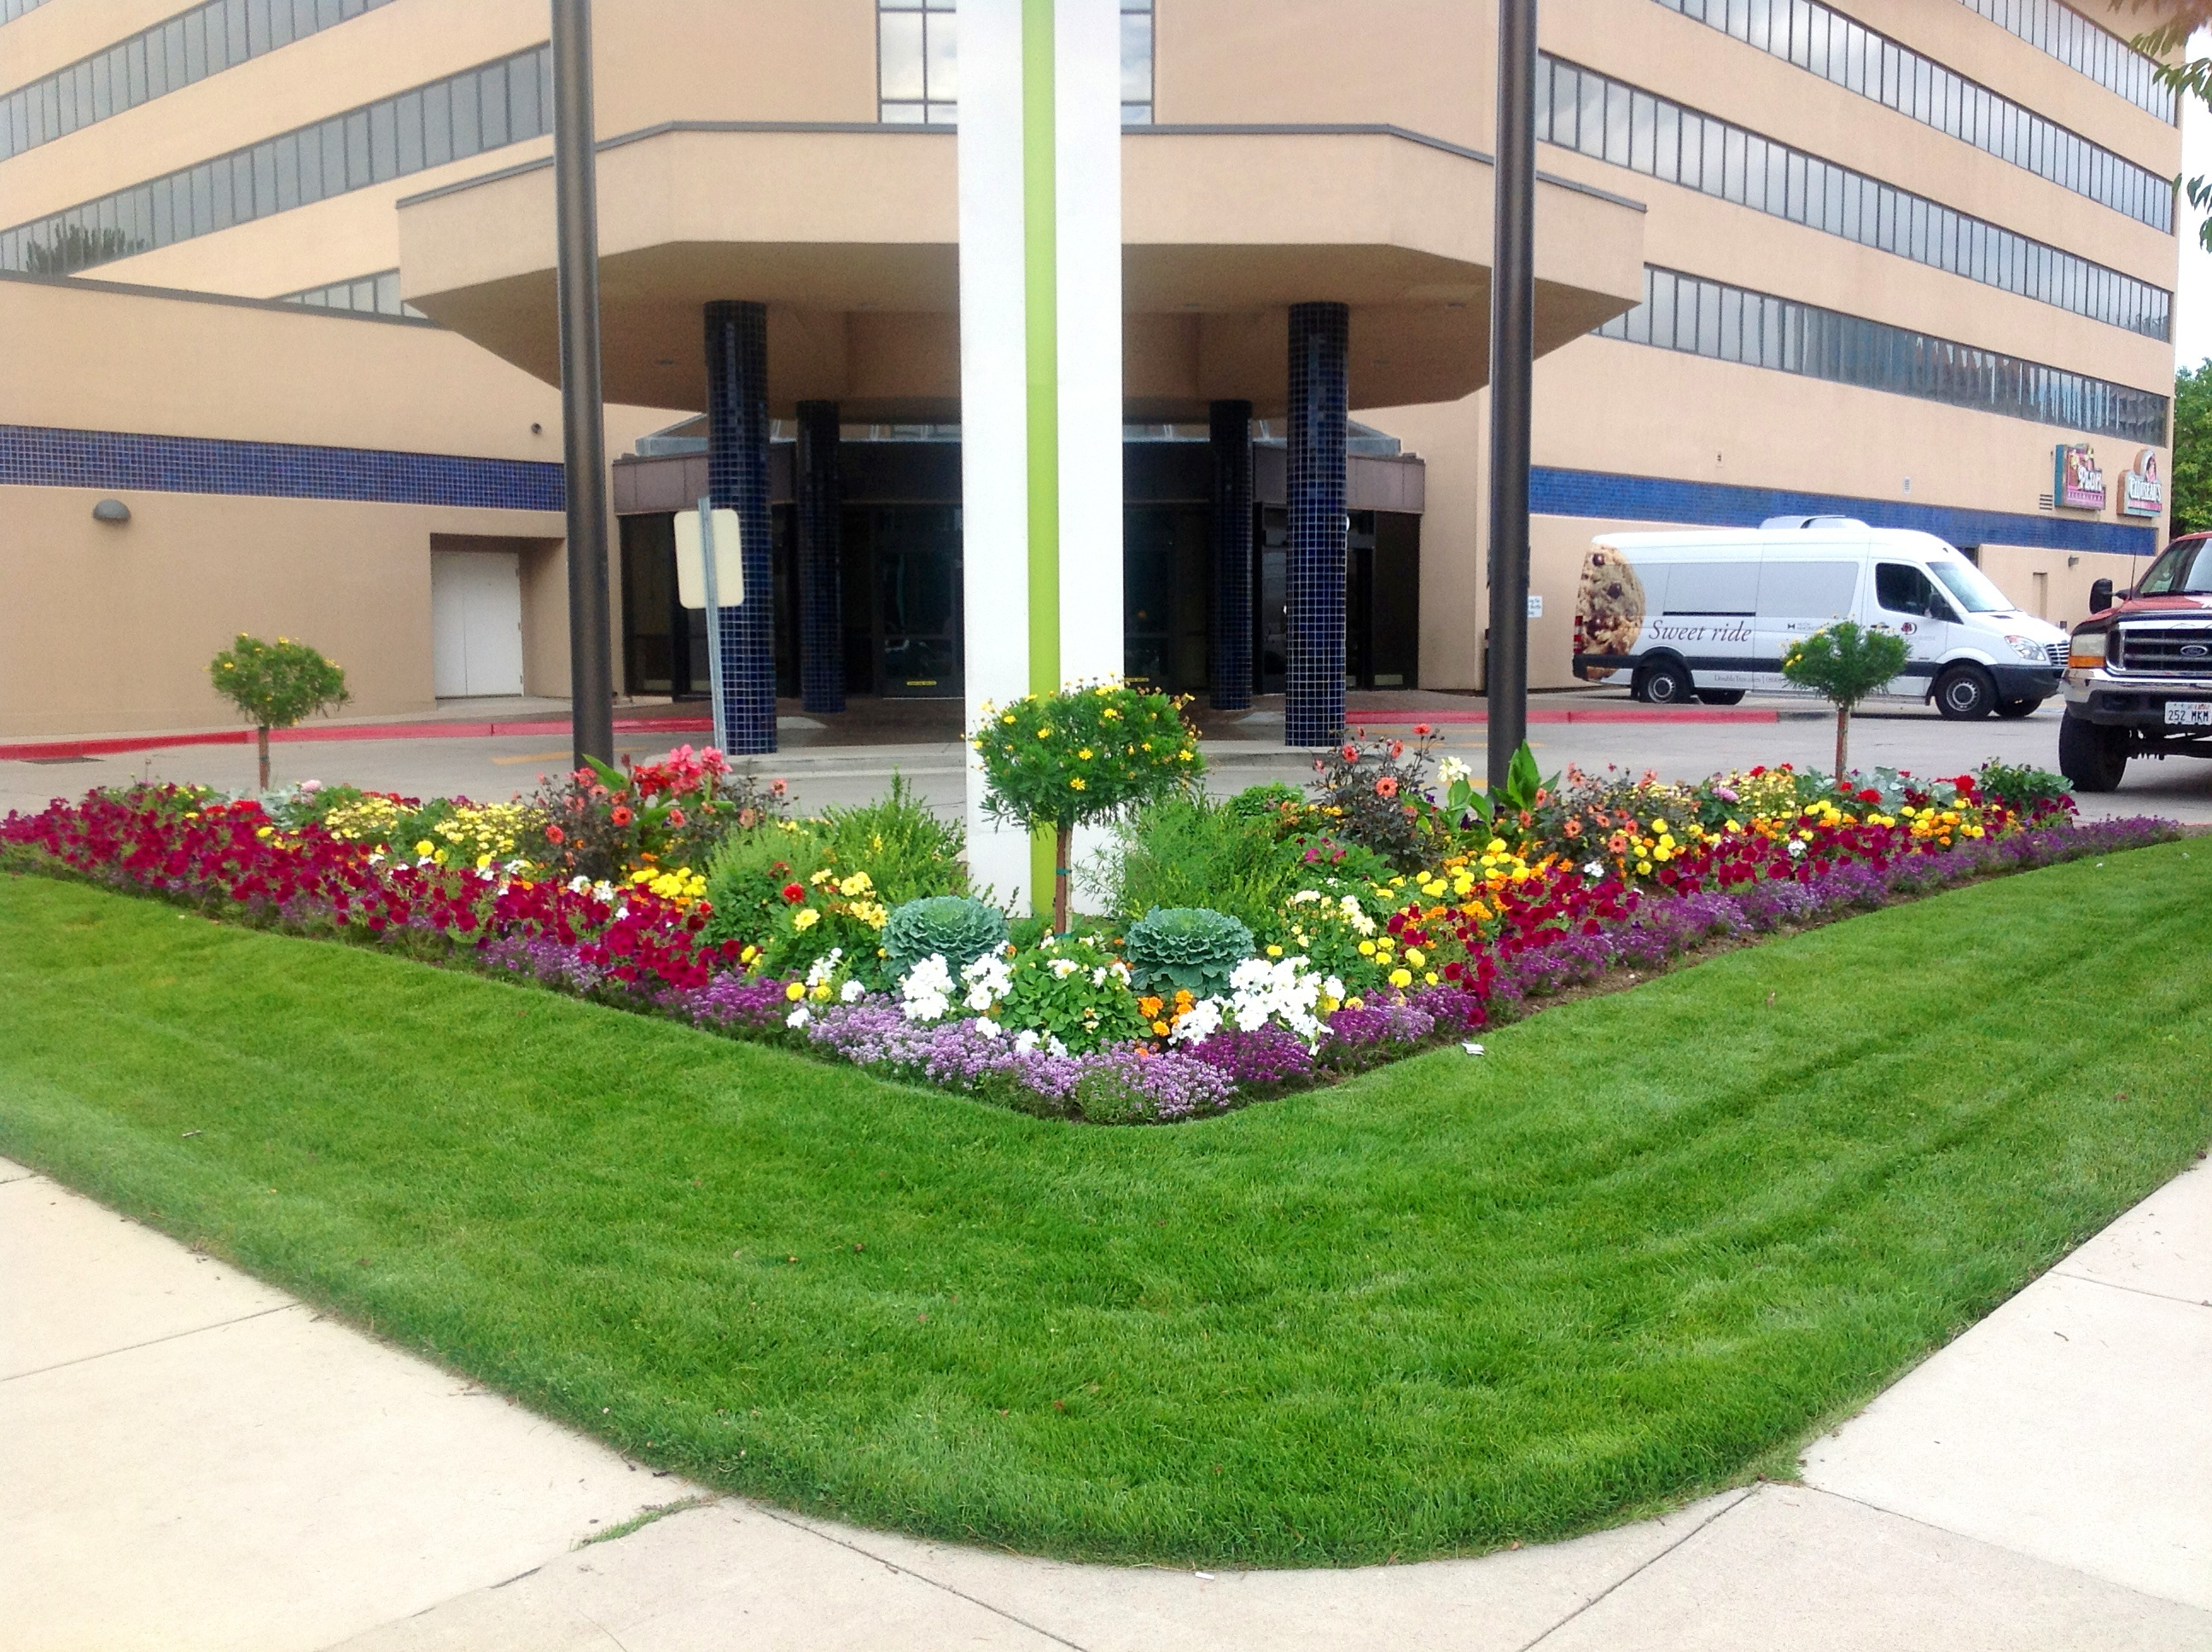 Commercial landscaping gallery ridgeline landscaping for Commercial landscaping